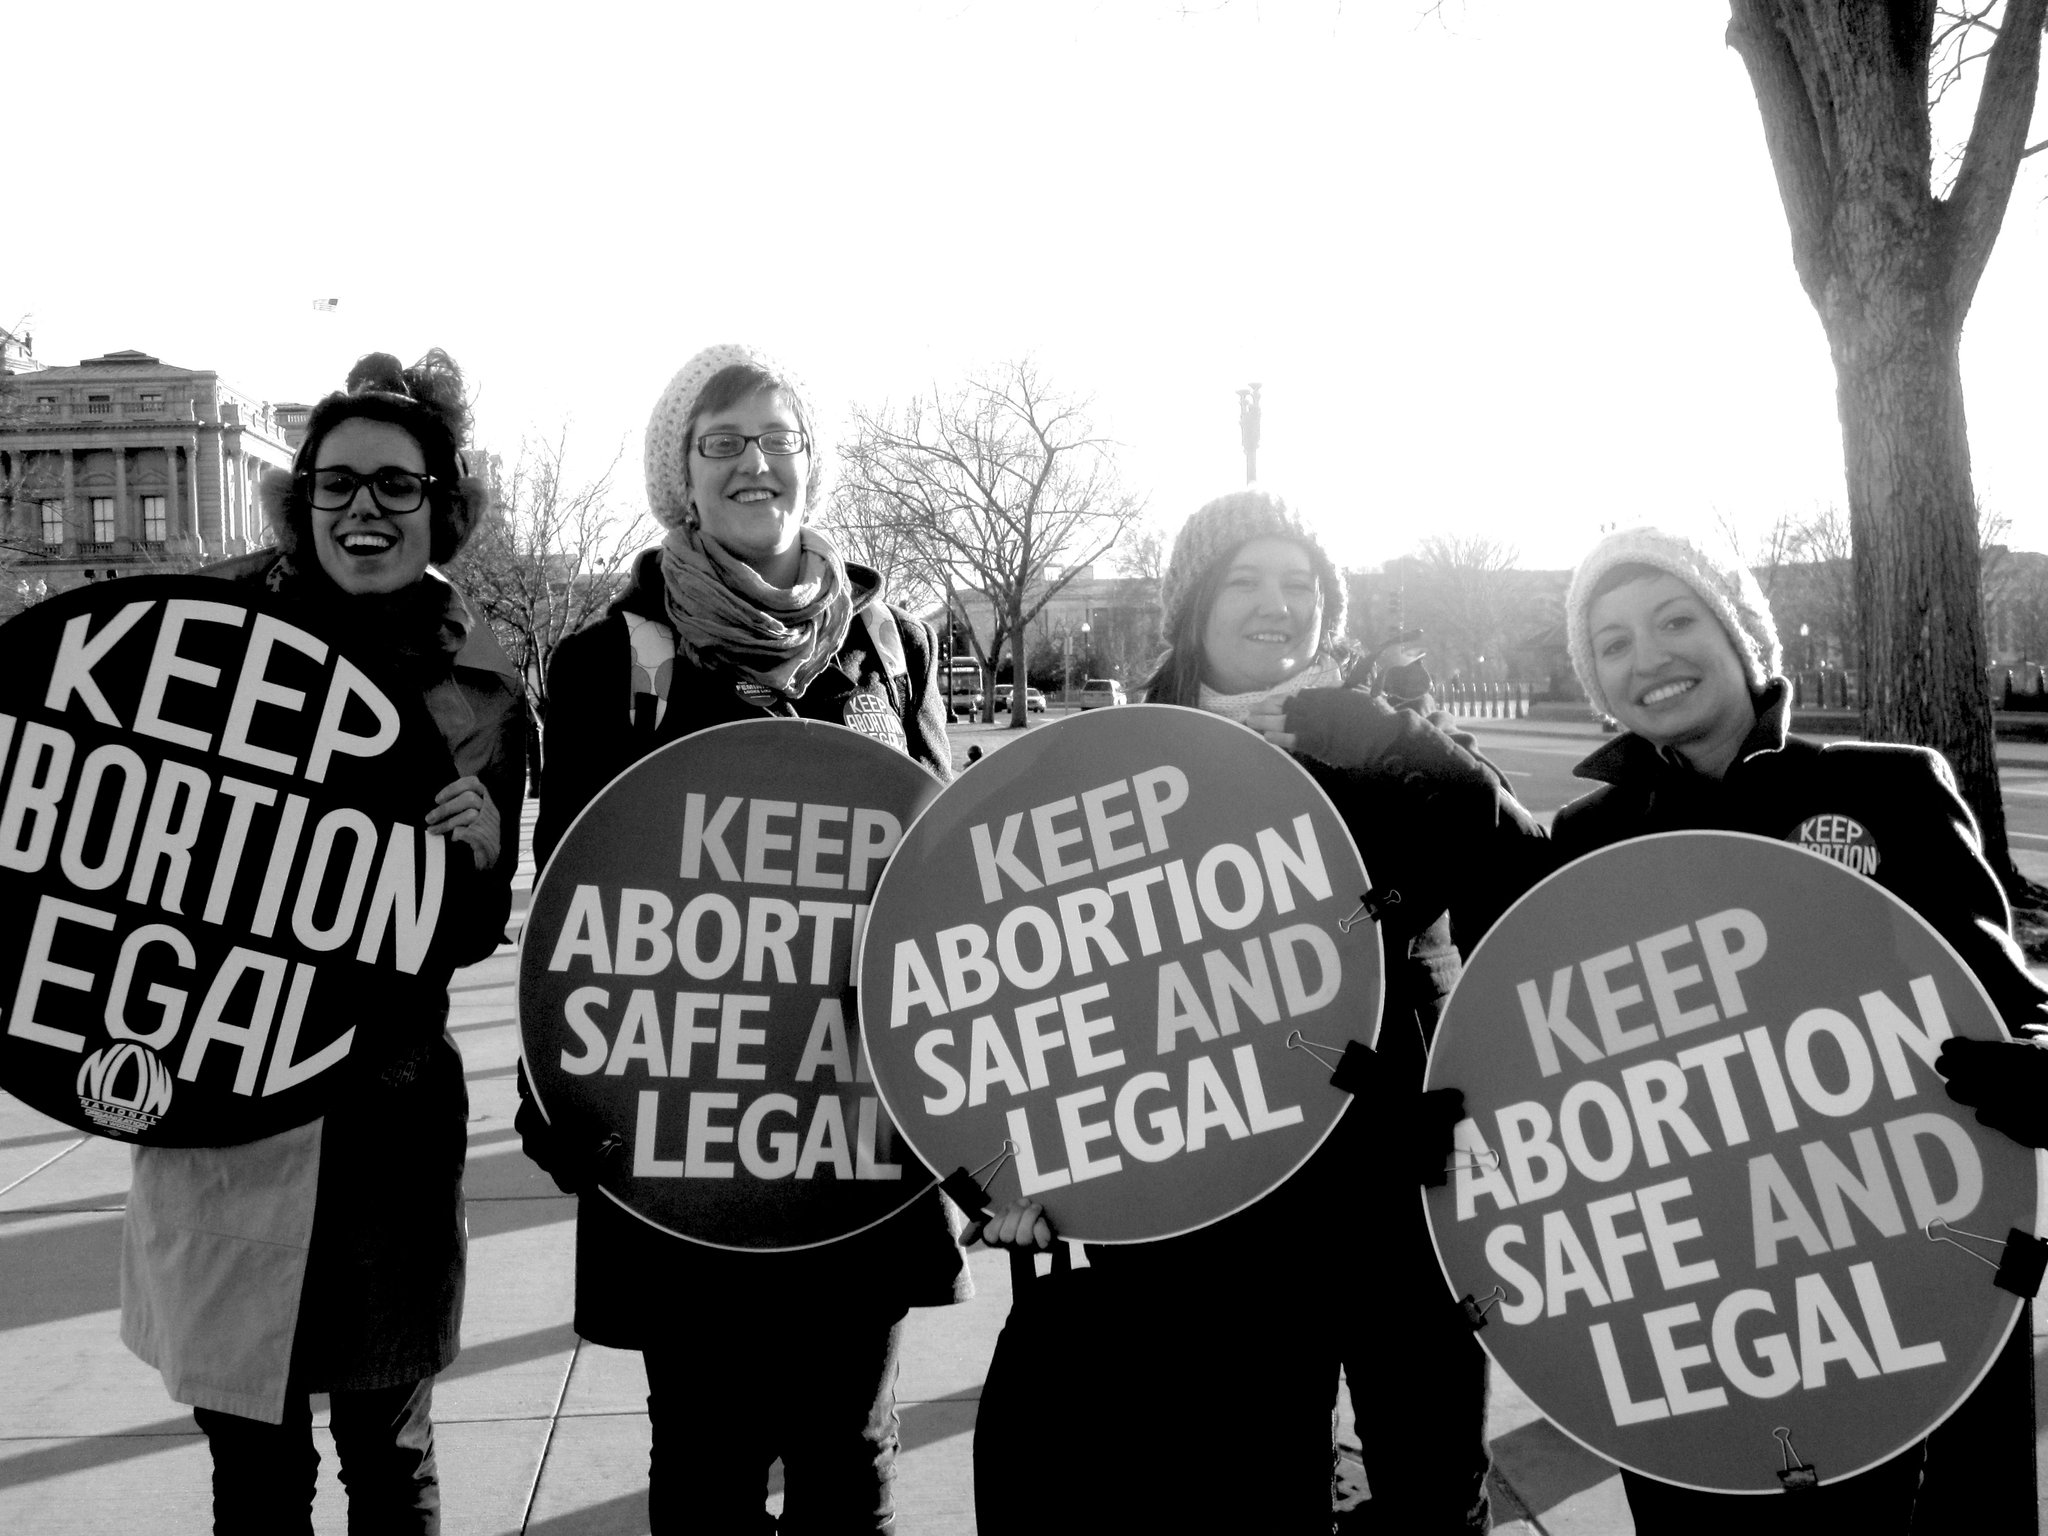 """keep abortion safe and legal"" signs"